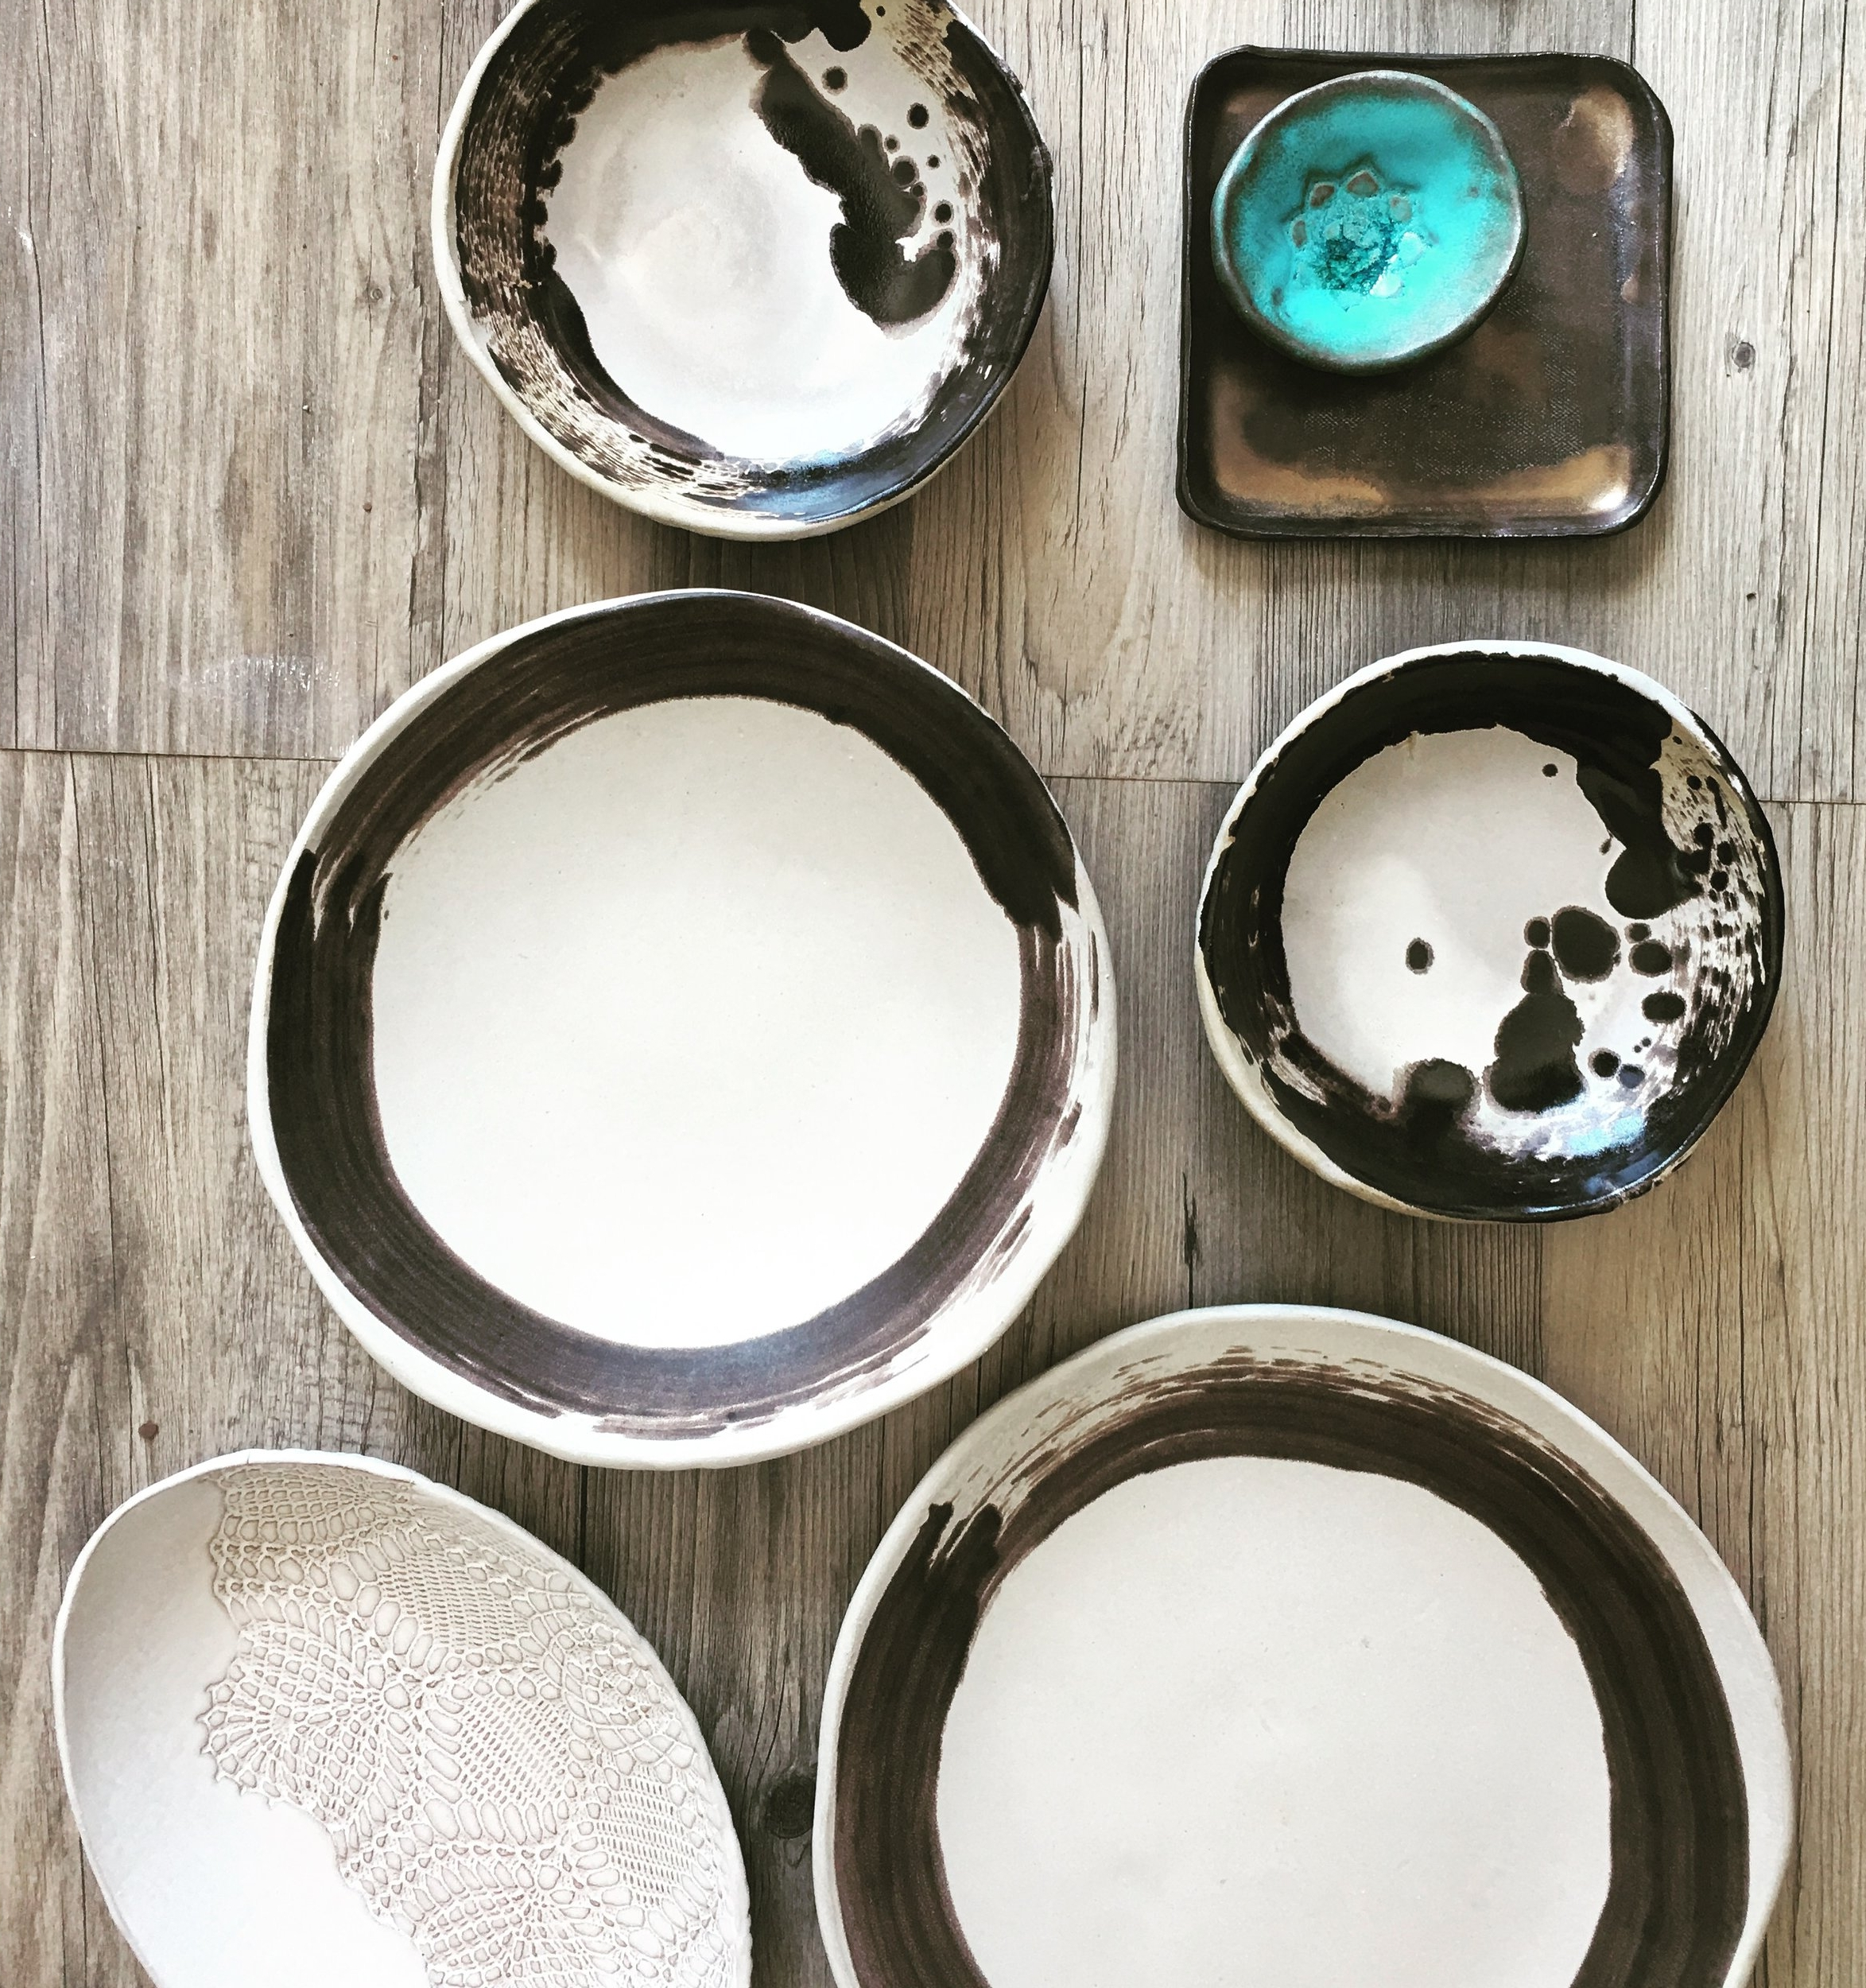 Zen plates for a chef from Phoenix